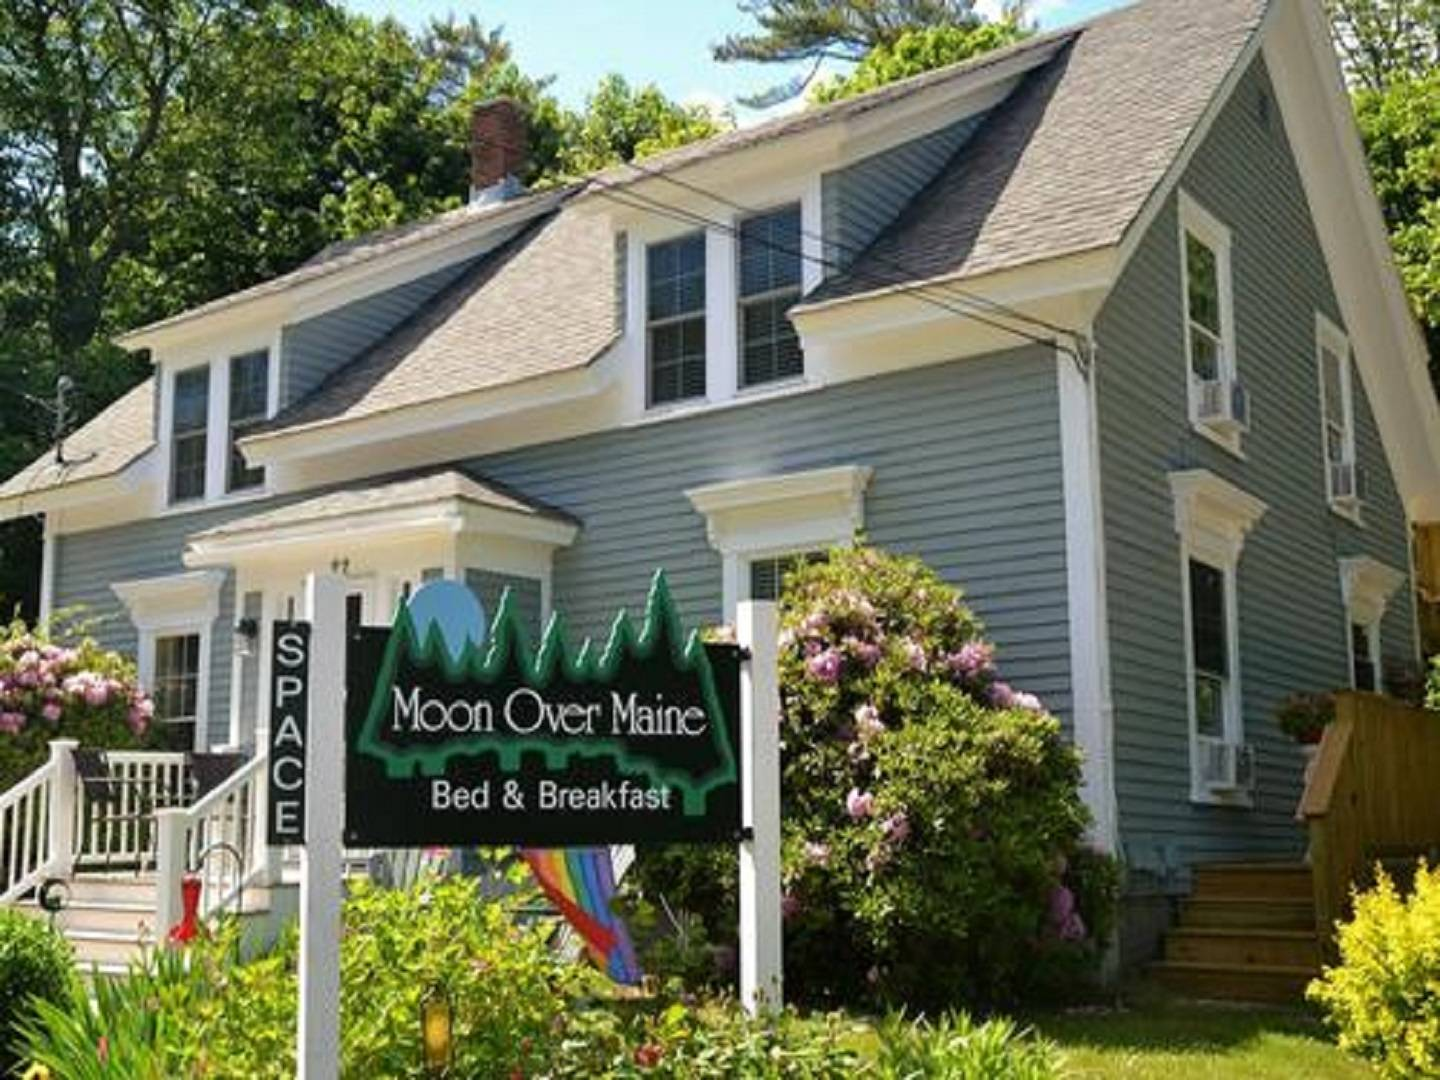 A sign in front of a house at Moon Over Maine.